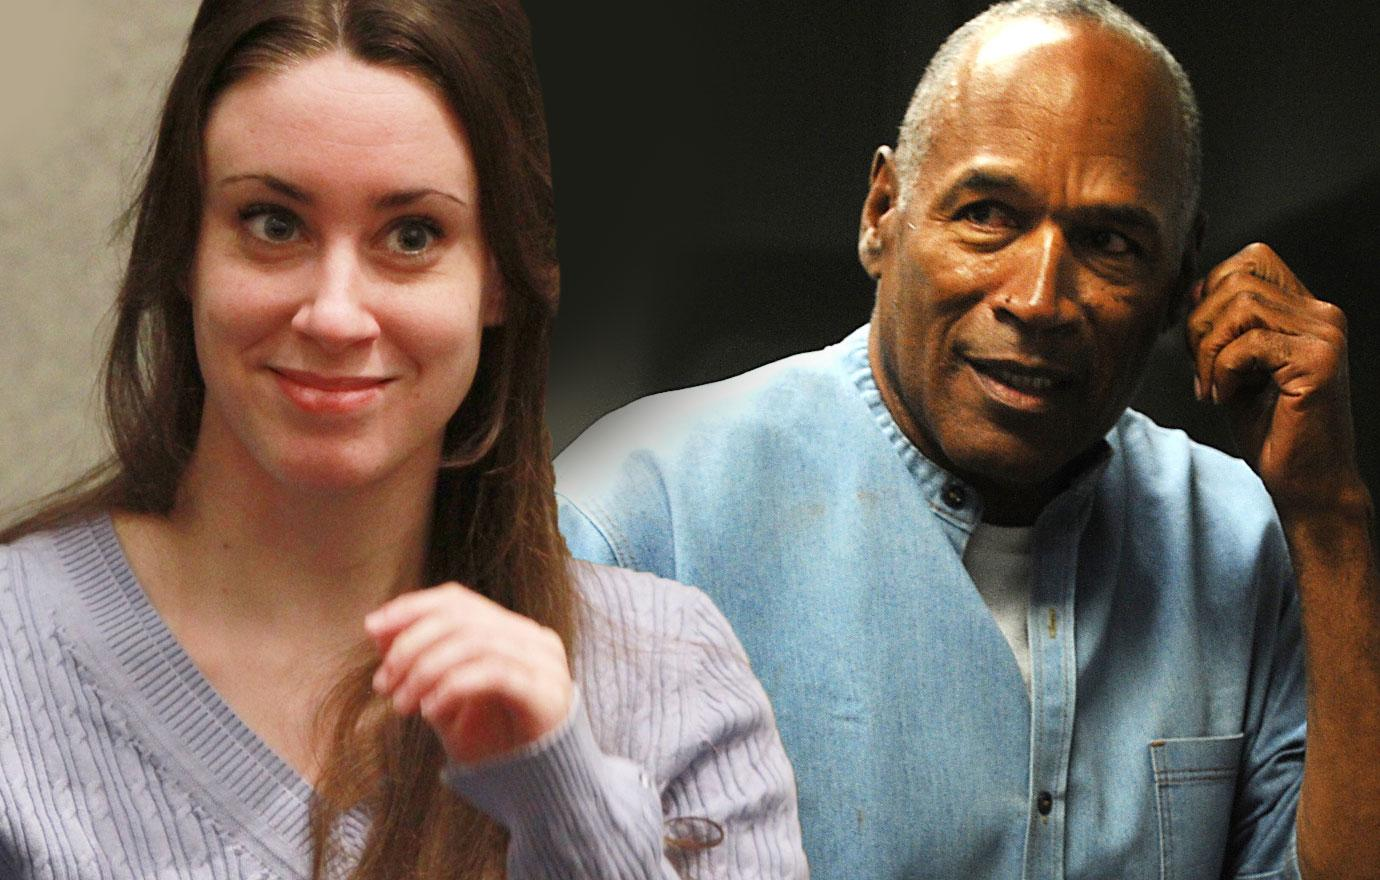 OJ Simpson Parole Floriday Casey Anthony